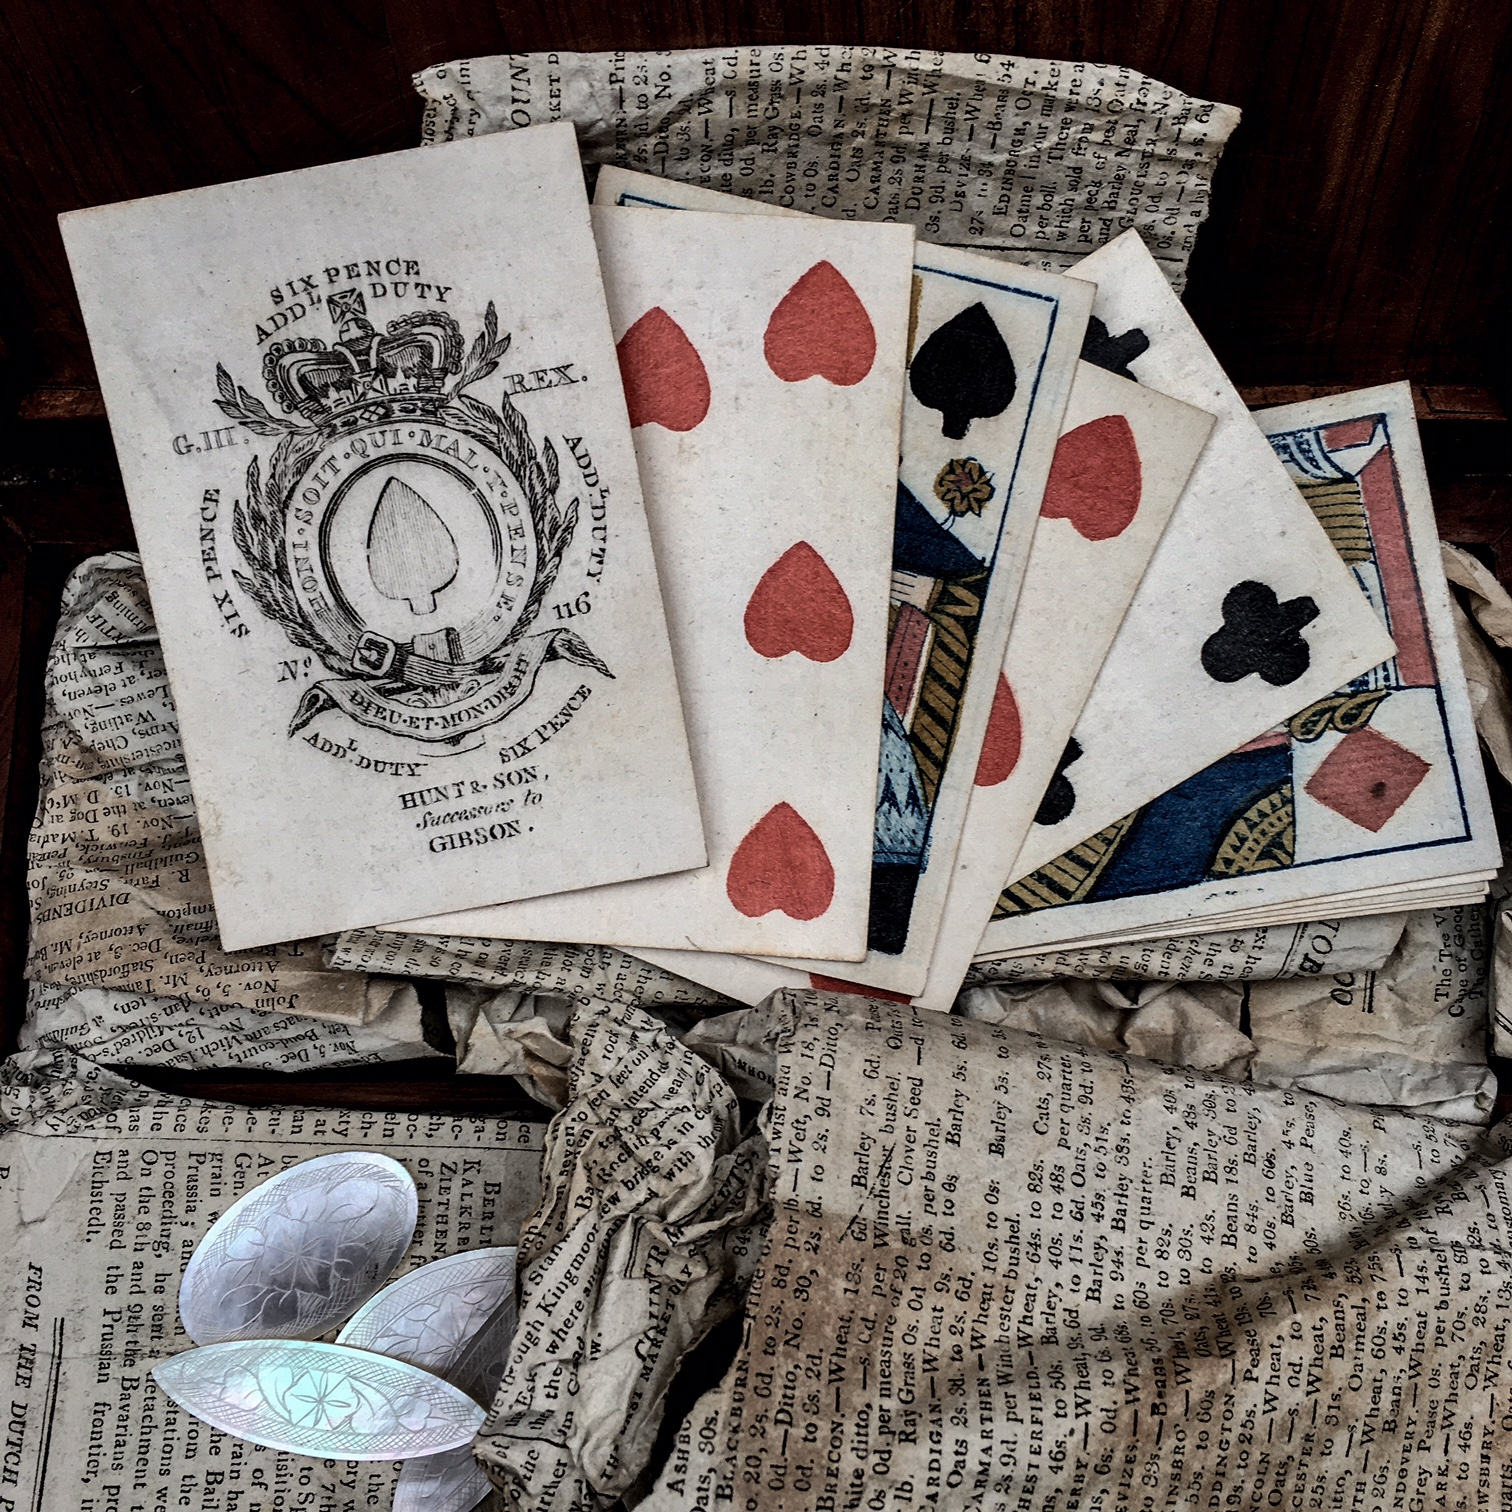 Spread of George III playing cards, showing tax paid of sixpence on the Ace of Spades.